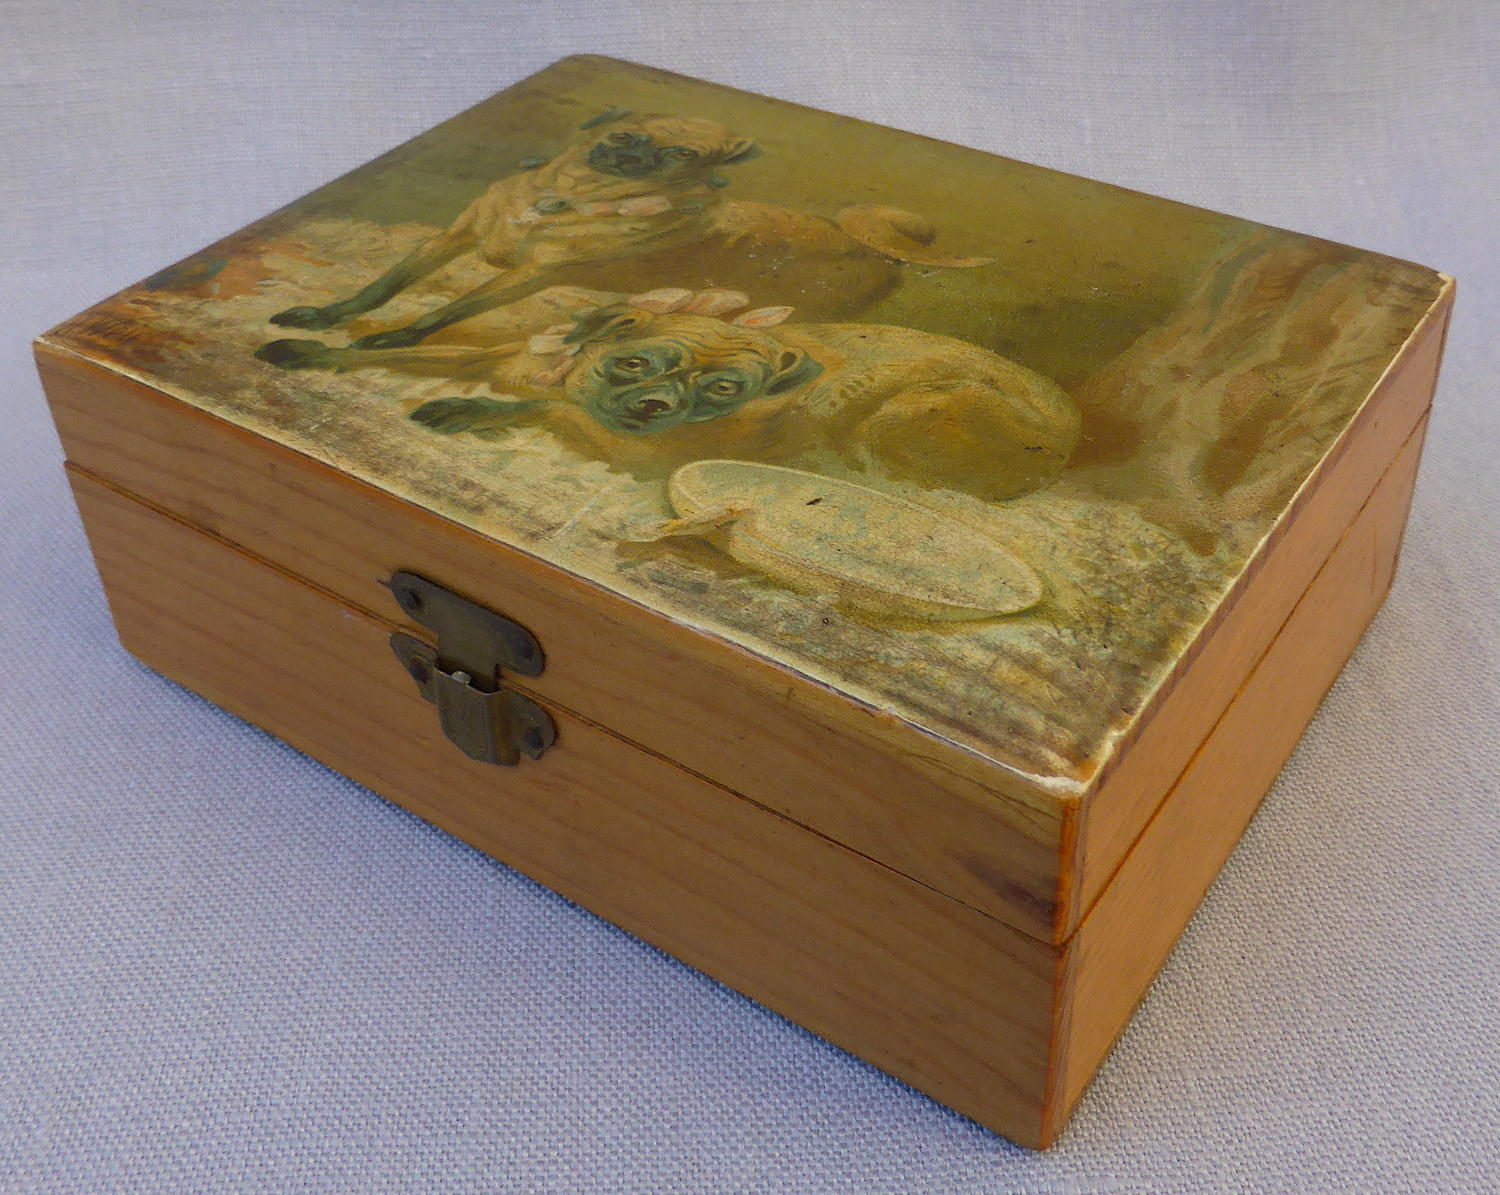 Pug dog Mauchline ware box decorated by Harrison Weir